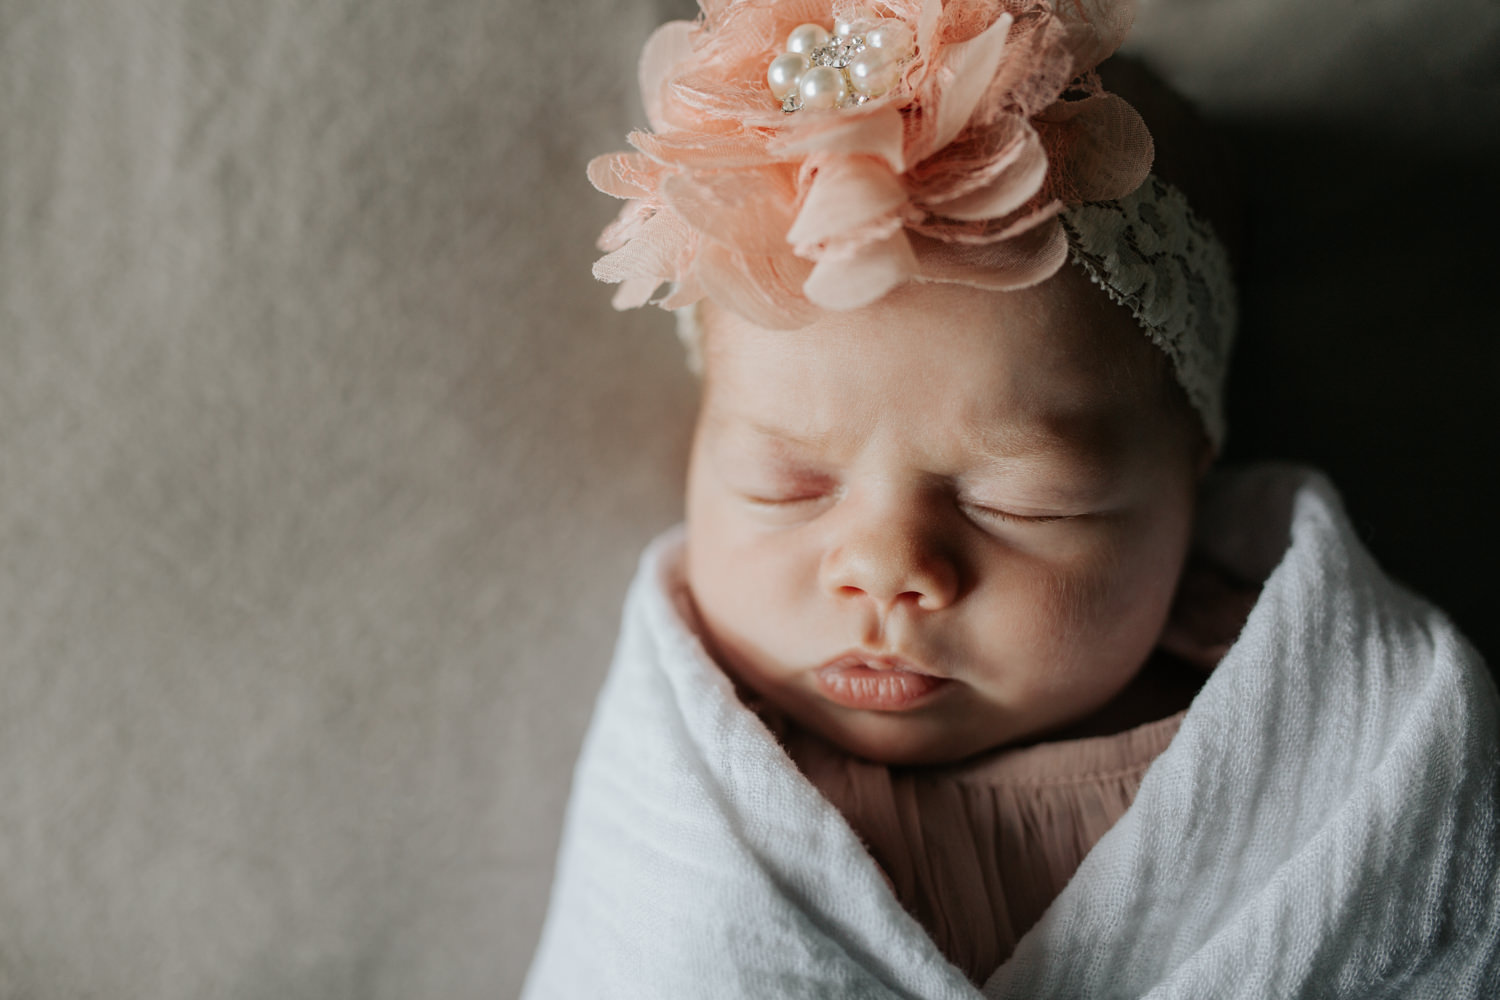 2 week old baby girl wrapped in white swaddle wearing pink flower headband fast asleep lying on master bed, lips pursed - Markham Lifestyle Photography